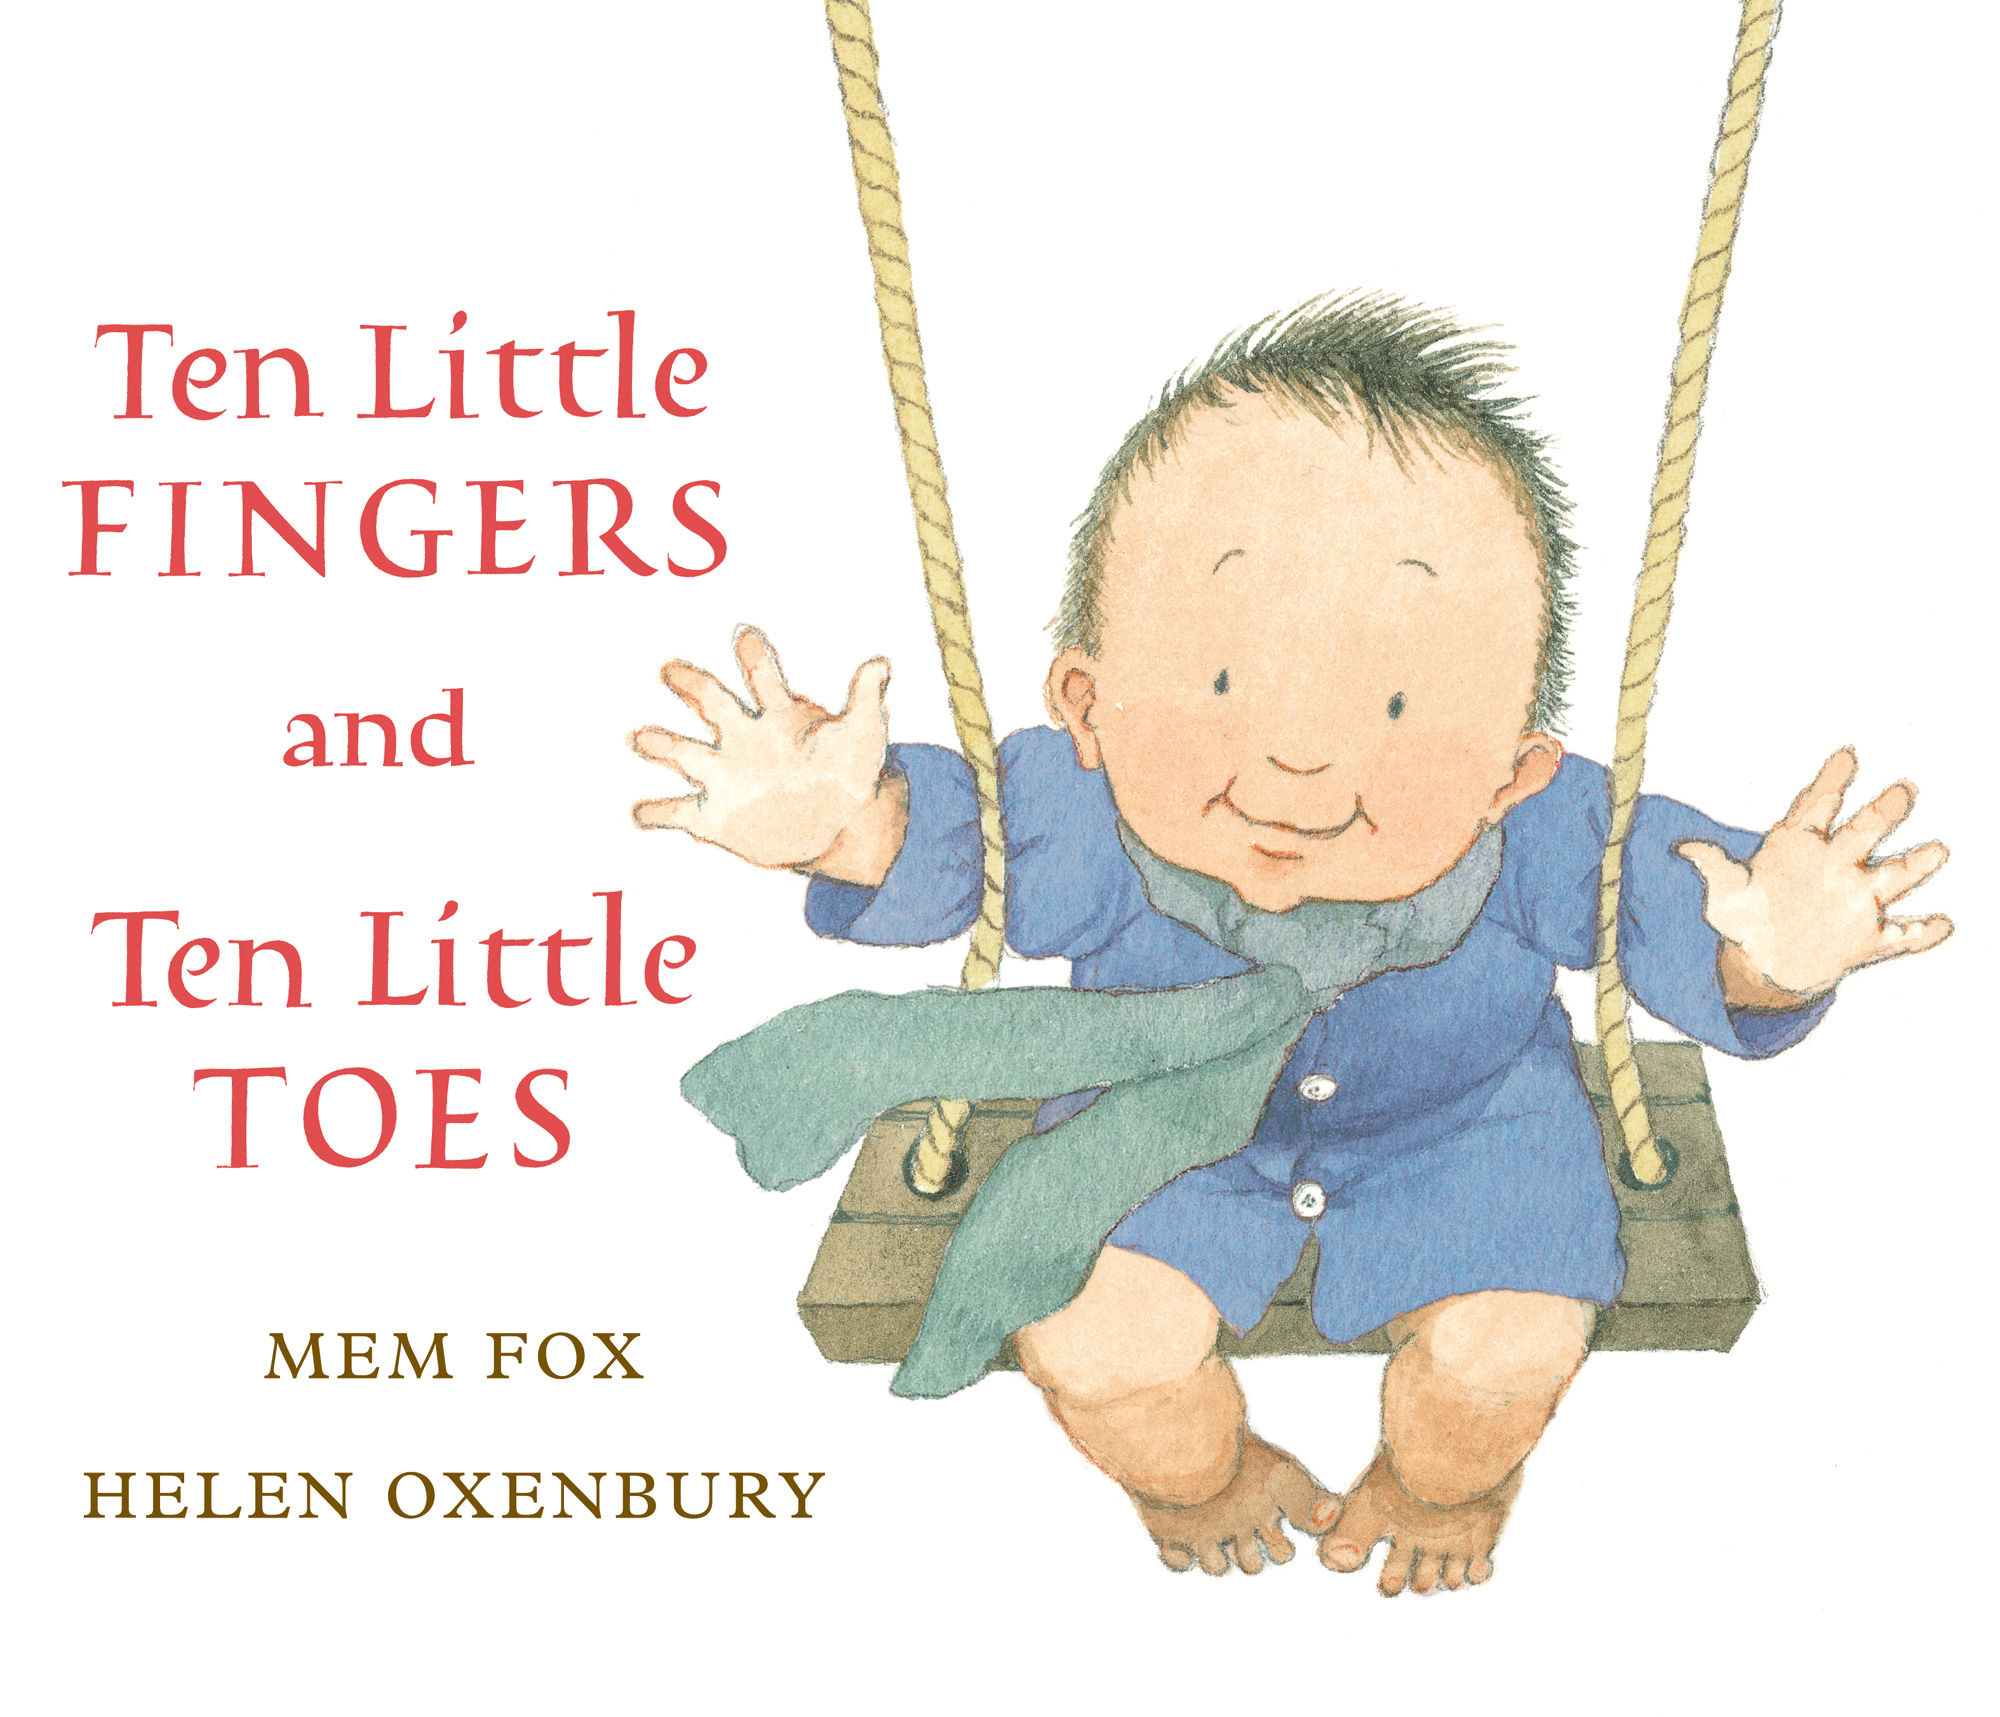 Ten Little Fingers and Ten Little Toes lap board book-9780547581033